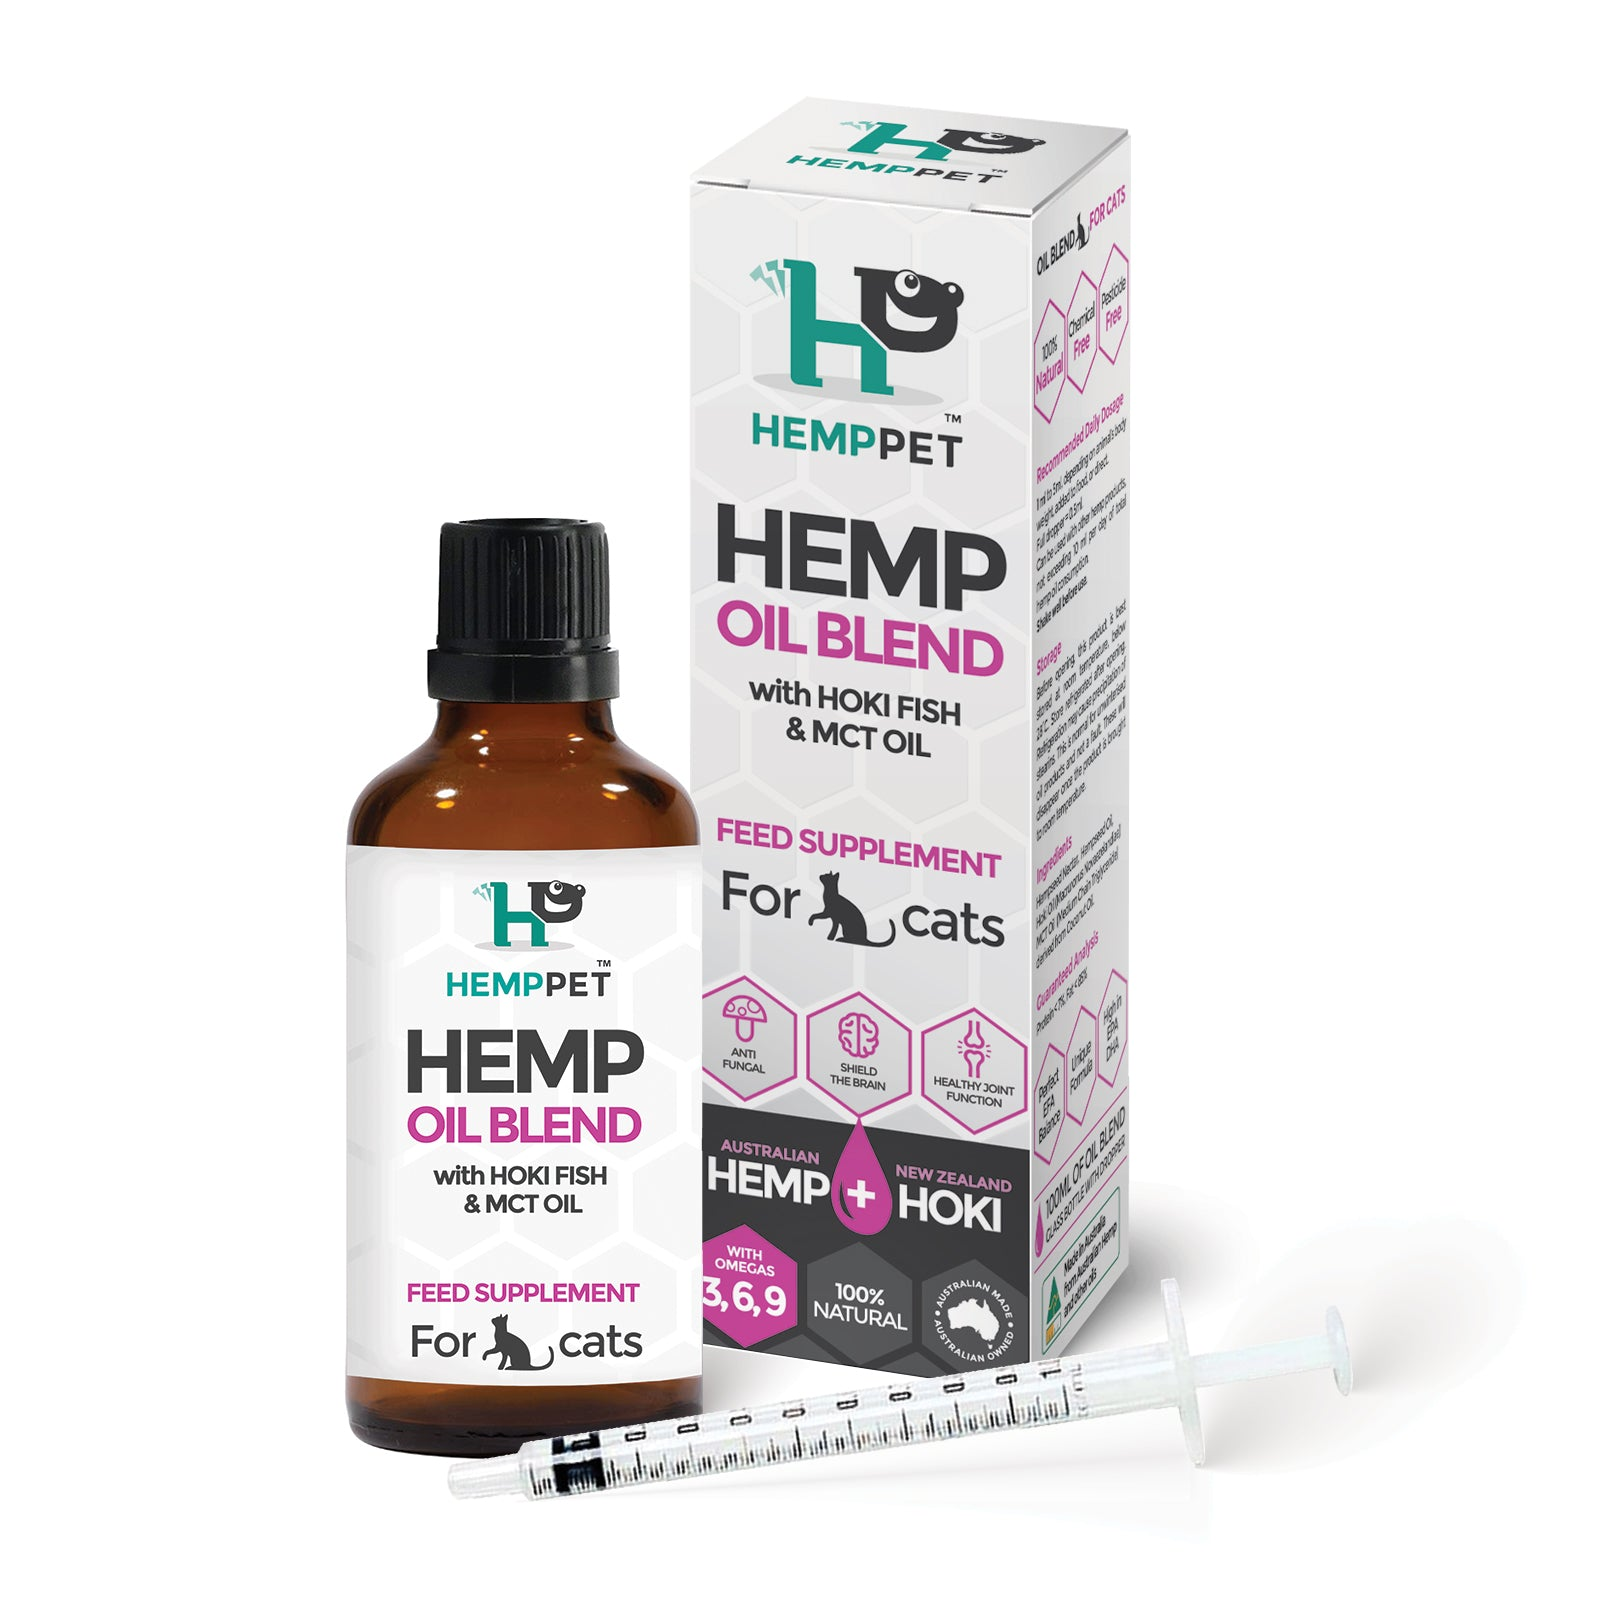 HempPet, Hemp Oil Blend with Hoki Fish and MCT oil for Cats, Omega 369, DHA, EPA, skin